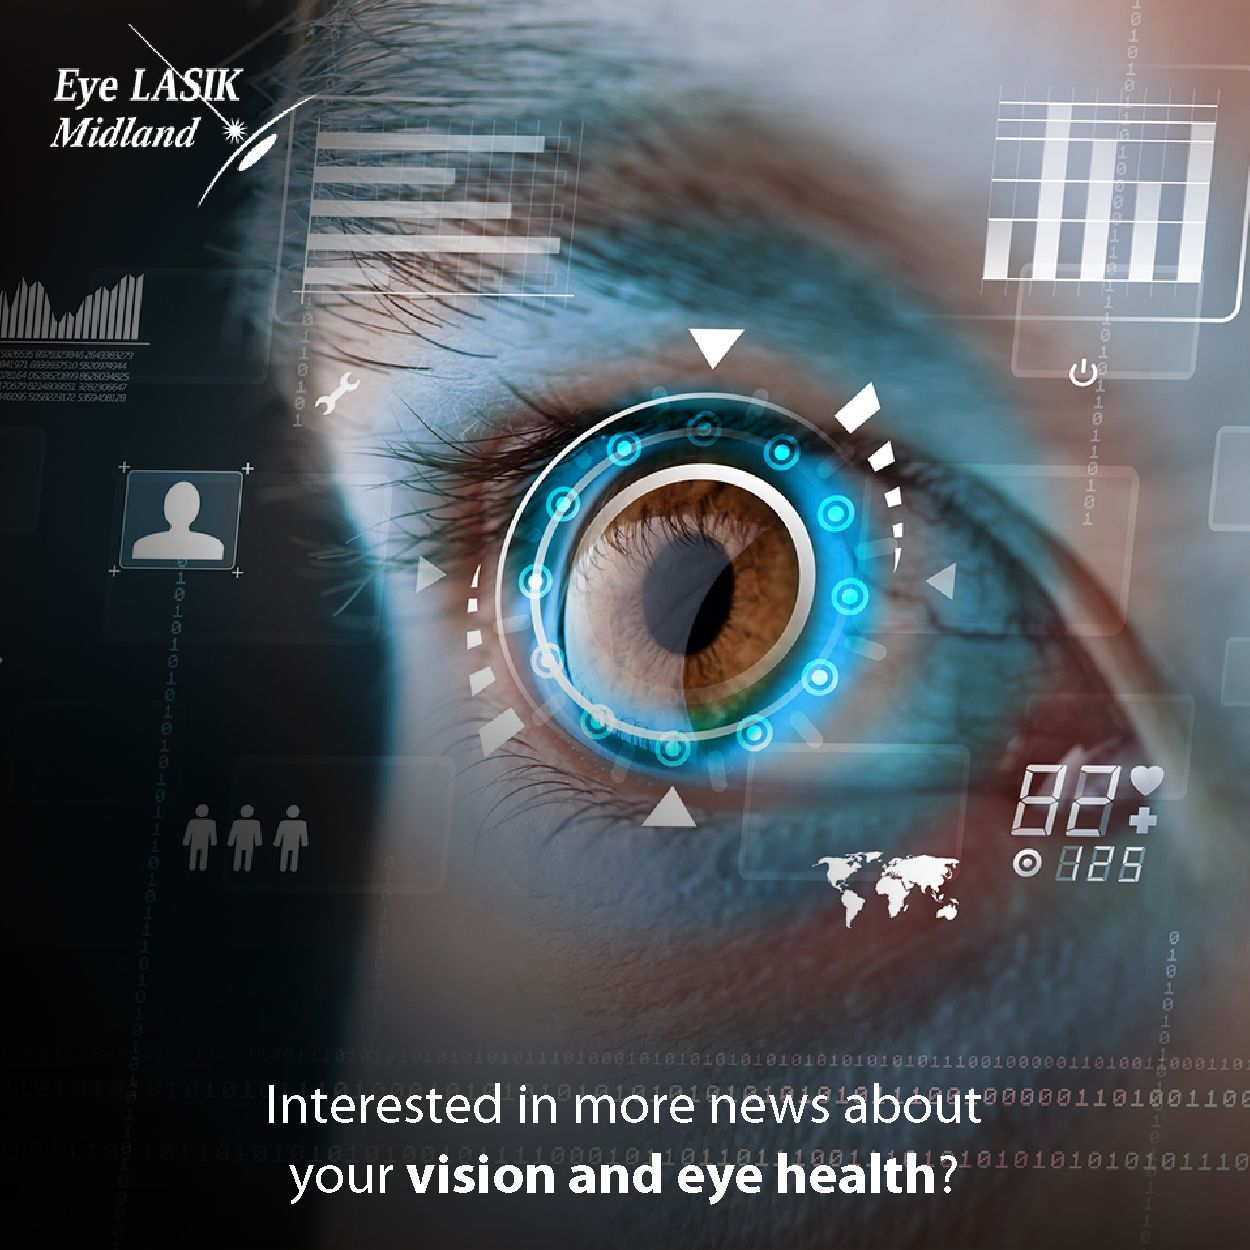 Interested in more news about your vision and eye health